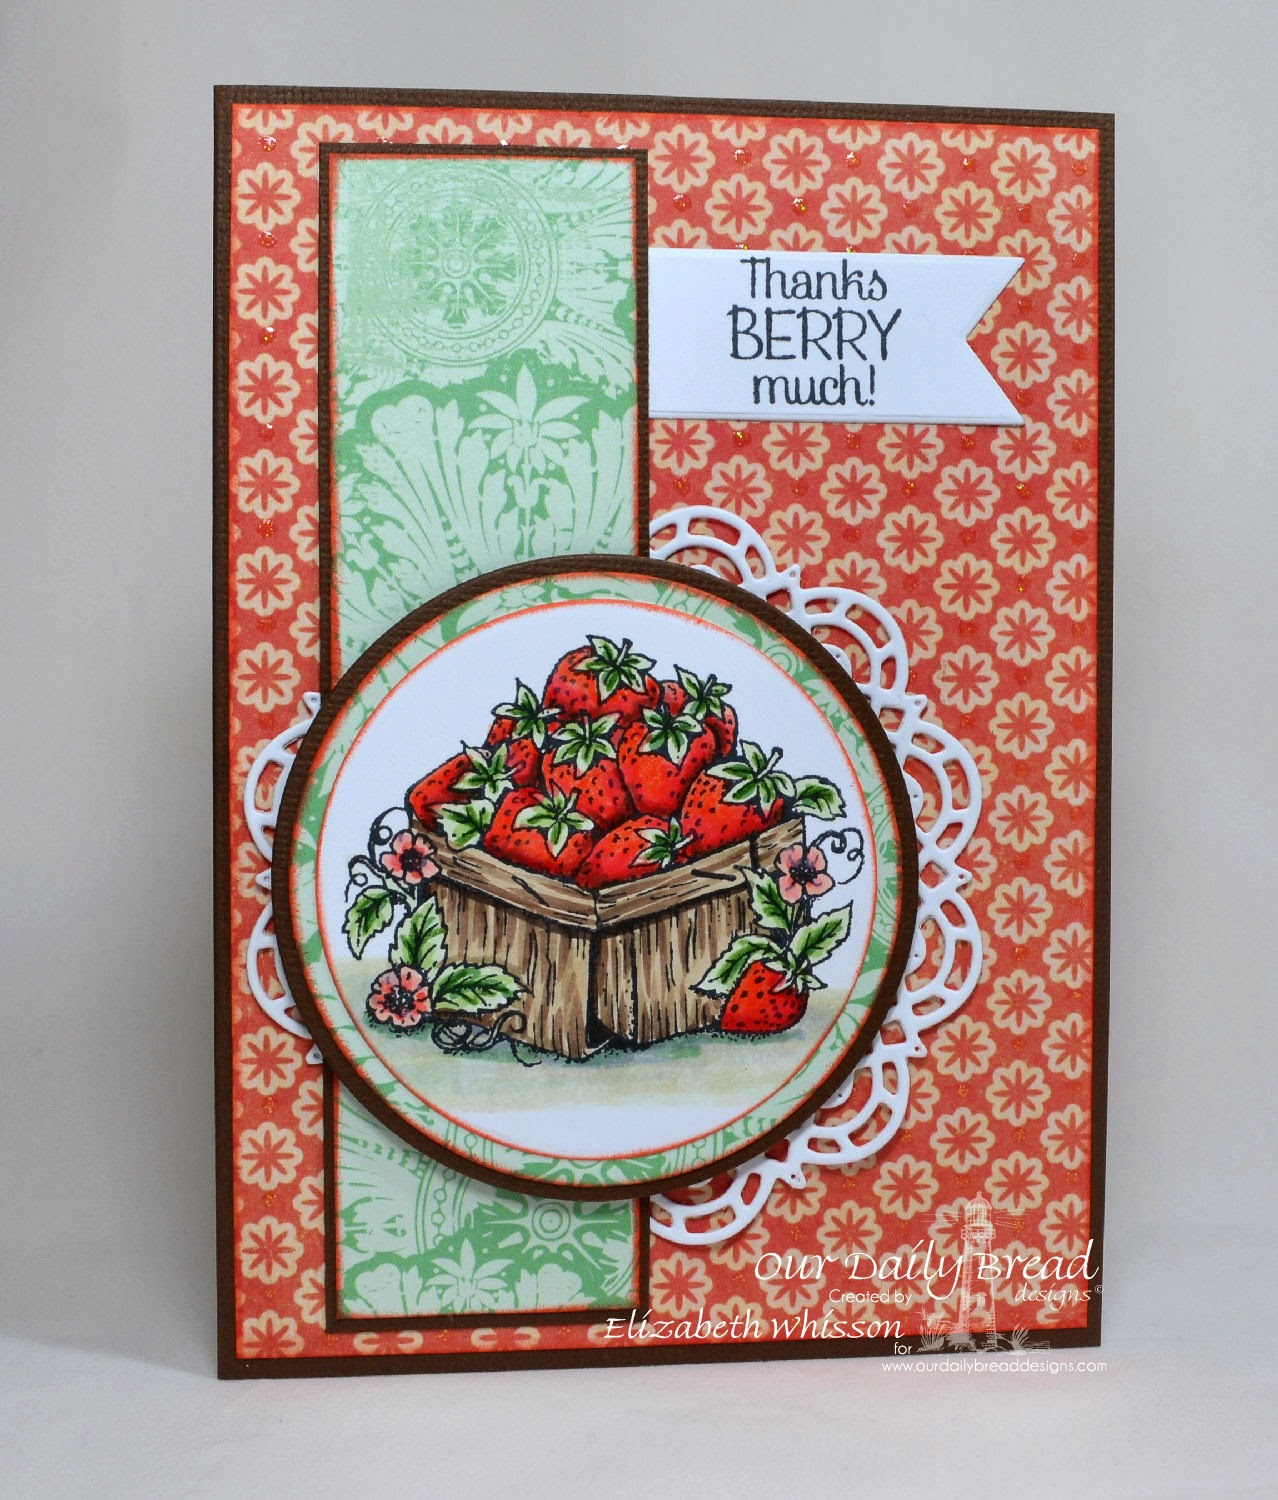 Our Daily Bread Designs, Elizabeth Whisson, Strawberries, Thanks Berry Much, DCWV Sweet Tangerine, Freshly Picked, Copics, Copic sketch, handmade card, ODBD Doily die, ODBD Matting Circles, ODBD Circle Ornament Dies, ODBD Pennant Dies,